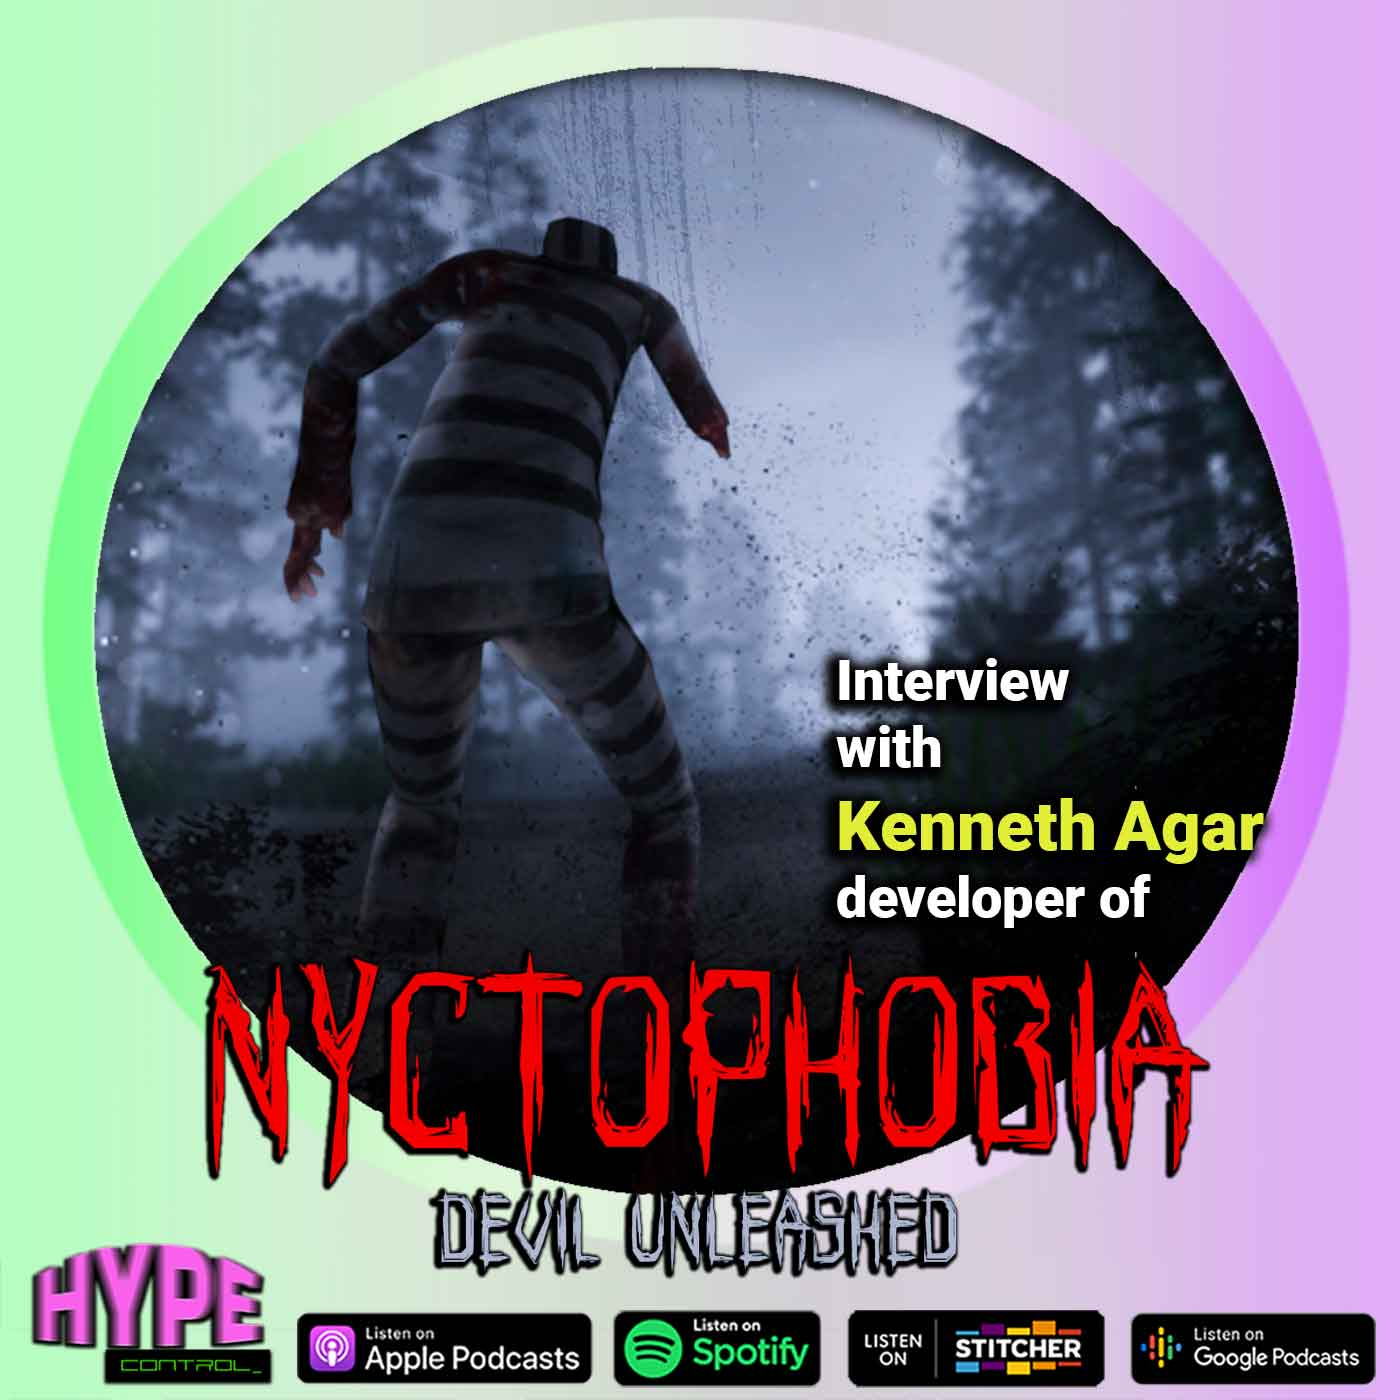 Ep. 27 - One on One Interview with Keneth Agar, Developer of Nyctophobia Devil Unleashed